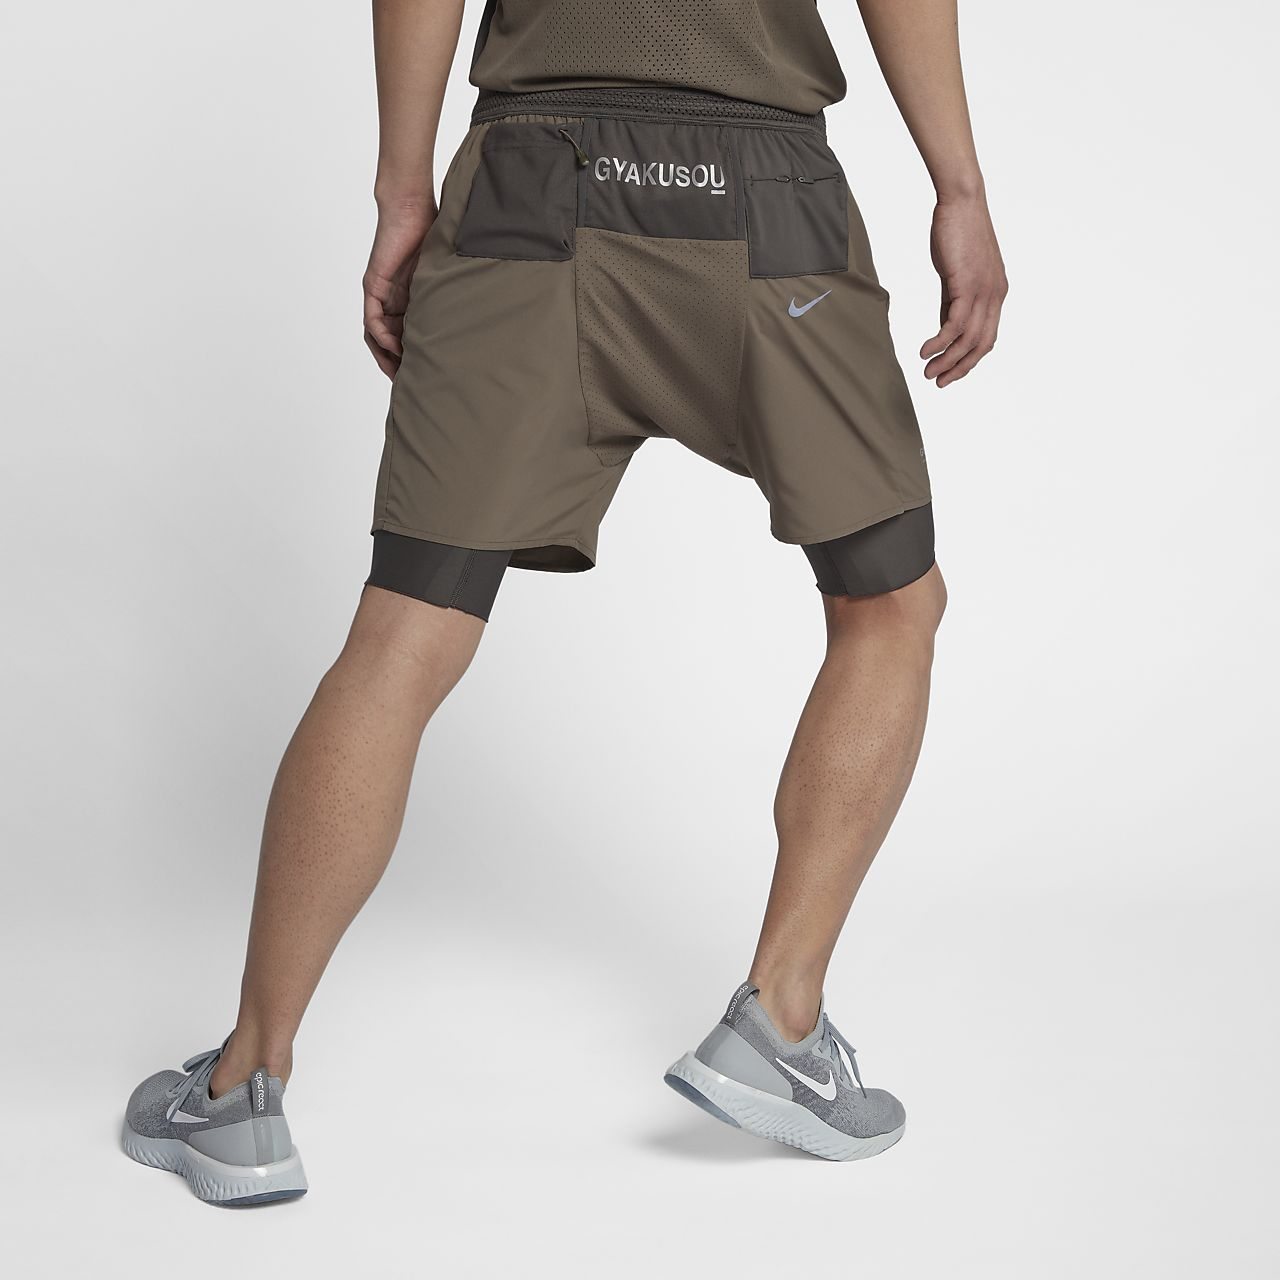 Nike Gyakusou Men's Shorts